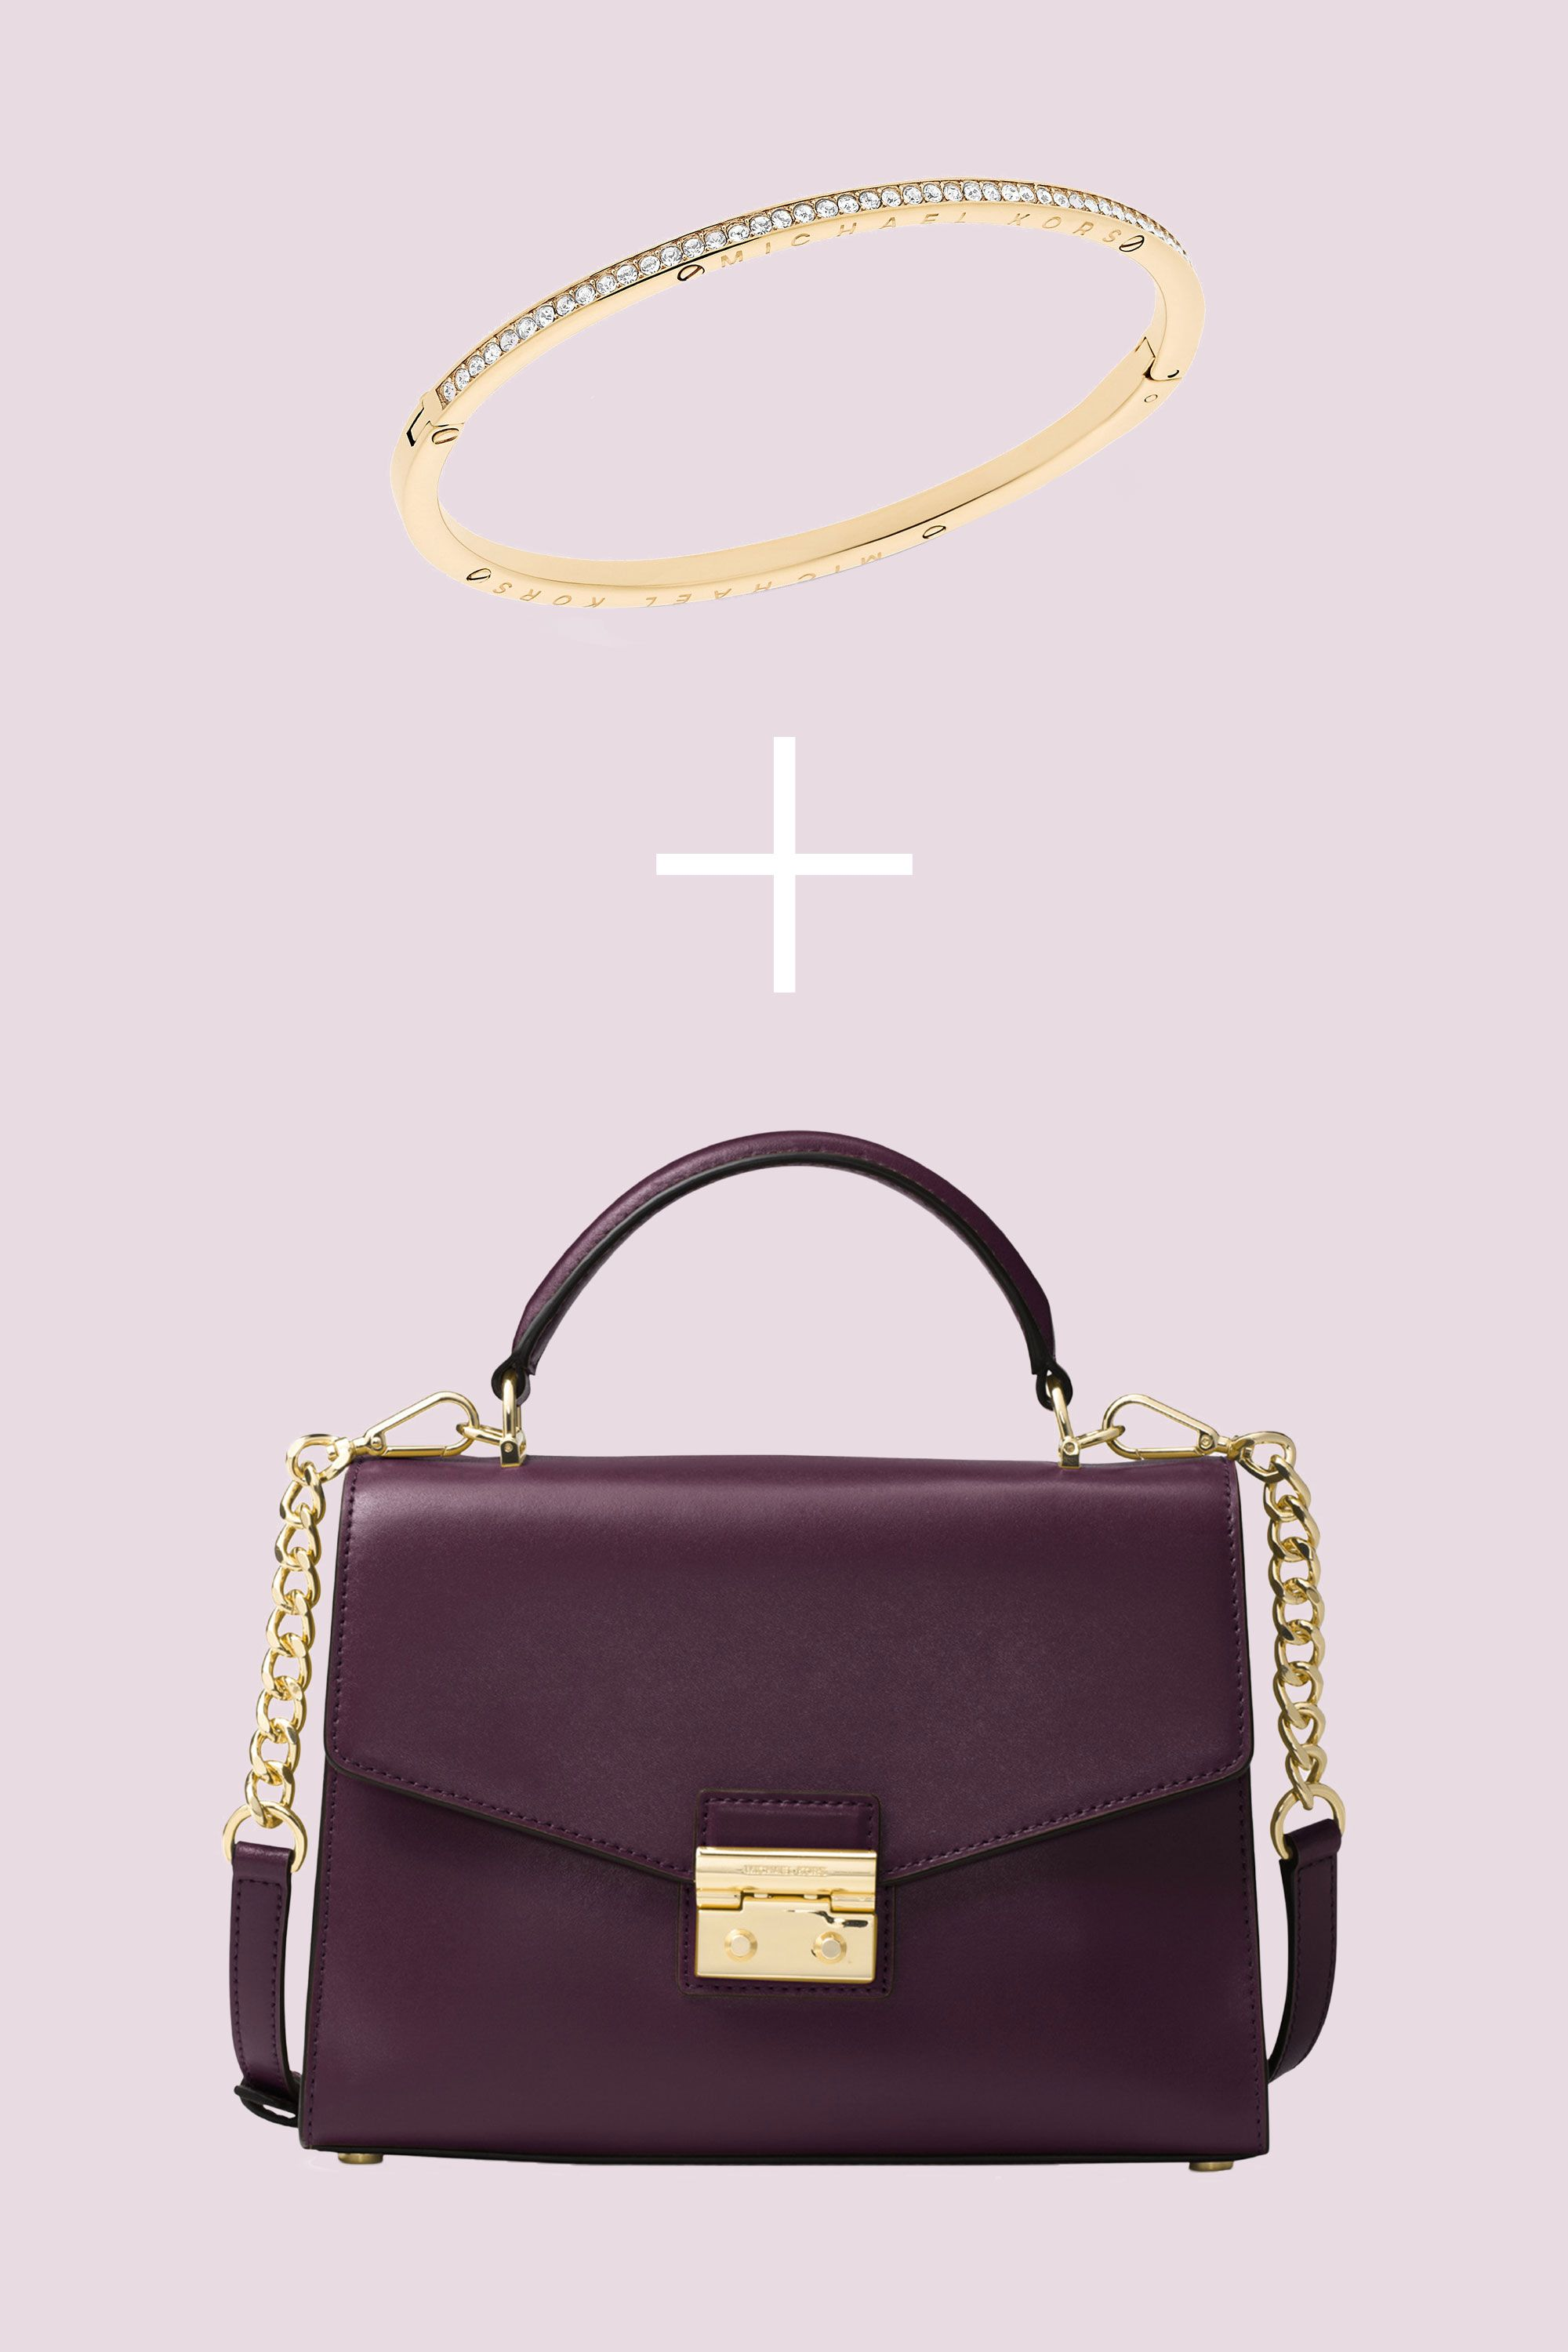 "<p>Trade in your basic bag for a structured satchel in an unexpected merlot hue. When paired with a sleek bangle, the look is sophisticated and elegant—and surprisingly versatile, too. </p><p><strong data-redactor-tag=""strong"" data-verified=""redactor"">BUY IT: </strong>Michael Kors bangle, $95; <a href=""https://www.macys.com/shop/product/michael-kors-pave-hinged-bangle-bracelet?ID=4436262&cm_mmc=carat_dis-_-sep2_nopro_auth_rtw_ffash_tentpole_display_w7080033_11696-_-1339154-_-09052017_10052017"" target=""_blank"" data-tracking-id=""recirc-text-link"">macys.com</a>. MICHAEL Michael Kors satchel, $268; <a href=""https://www.macys.com/shop/product/michael-michael-kors-sloan-medium-top-handle-satchel?ID=4767770&CategoryID=26846&cm_mmc=carat_dis-_-sep2_nopro_auth_rtw_ffash_tentpole_display_w7080033_11696-_-1339154-_-09052017_10052017"" target=""_blank"" data-tracking-id=""recirc-text-link"">macys.com</a><br></p>"